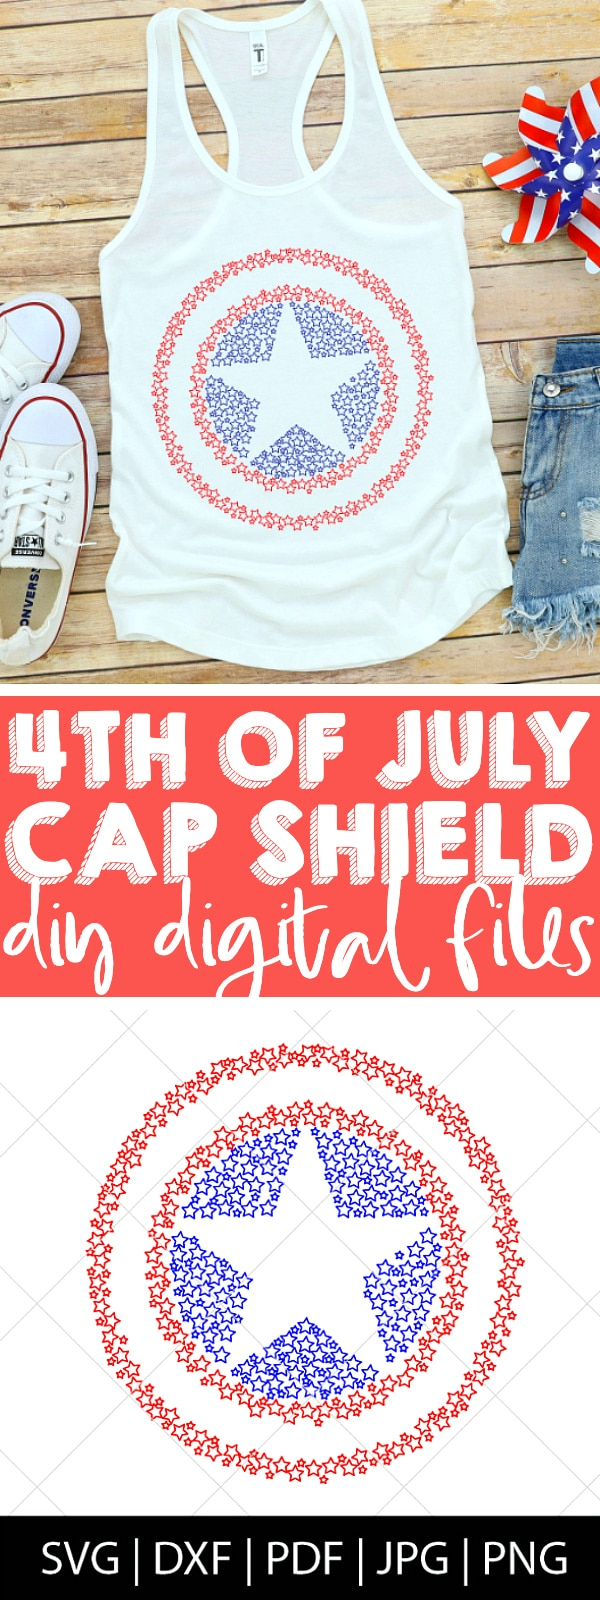 DIY Captain America Shield SVG FILE - Make your own DIY Captain America Shirt with a design that is perfect for 4th of July celebrations! This Cap Star Shield design is perfect for Captain America birthday parties as well as 4th of July party decor, invites, attire and more! | THE LOVE NERDS #disneyside #marvel #captainamericaprojects